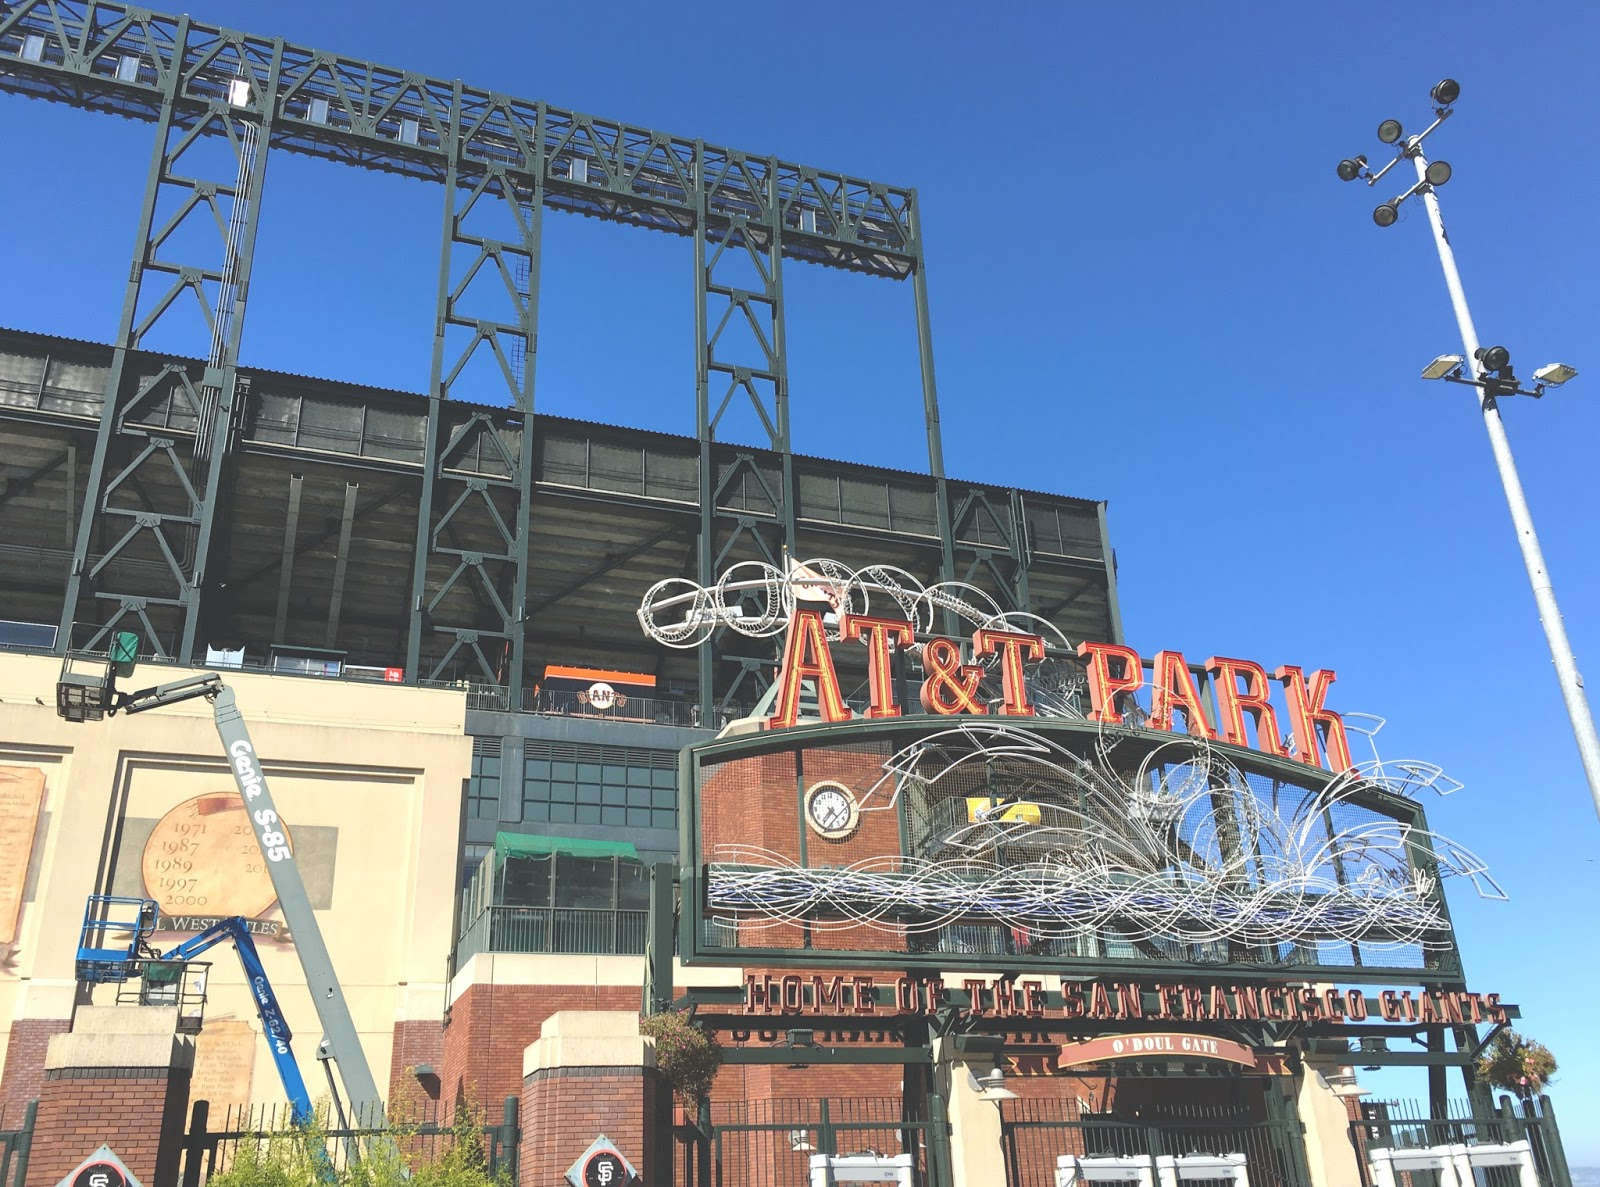 AT&T Park in San Francisco, California